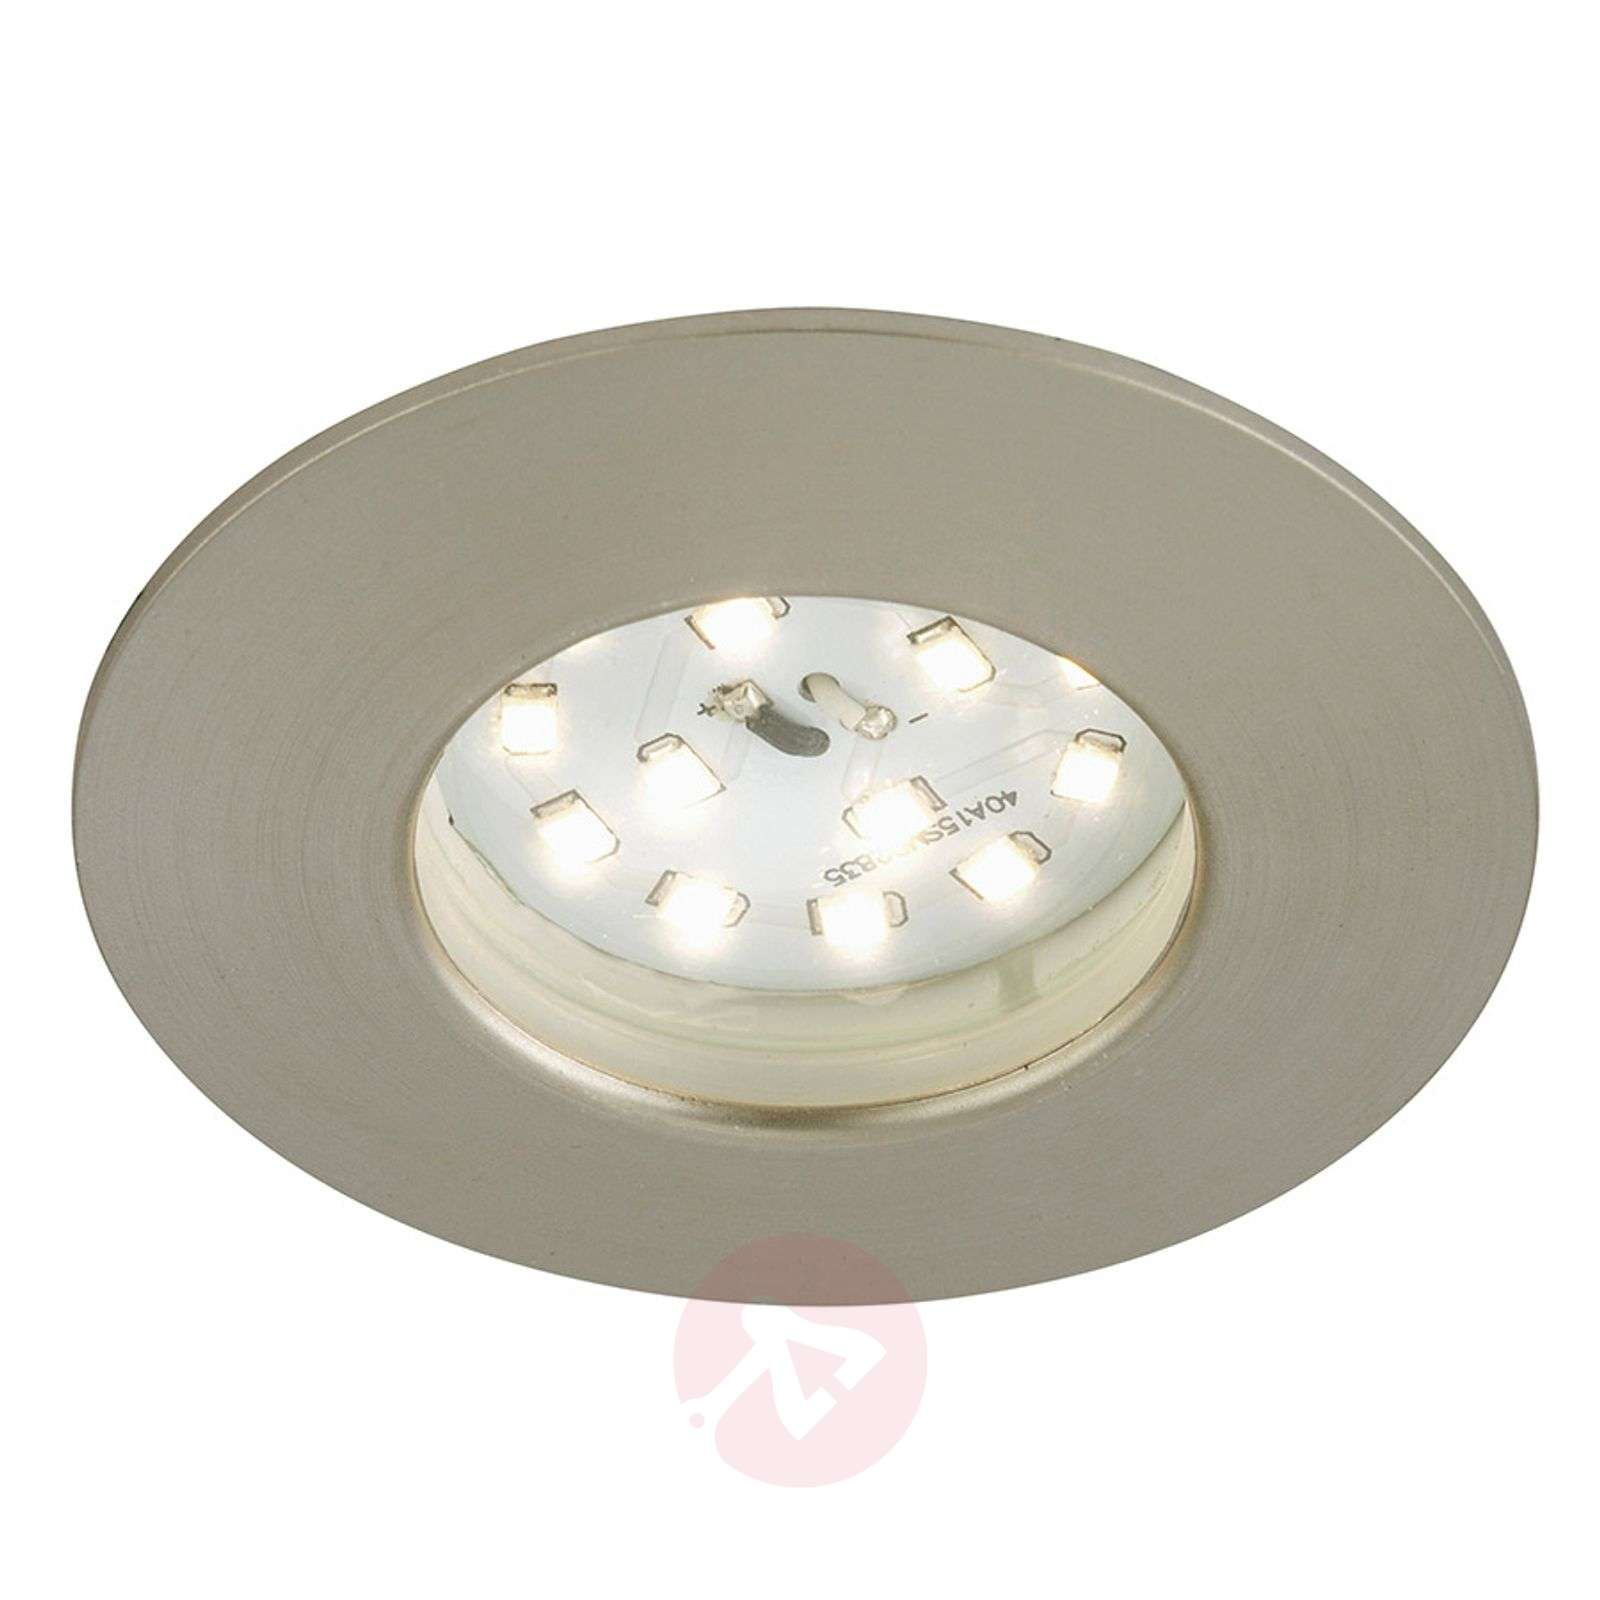 Spot encastré LED Felia IP44, nickel mat-1510318-01